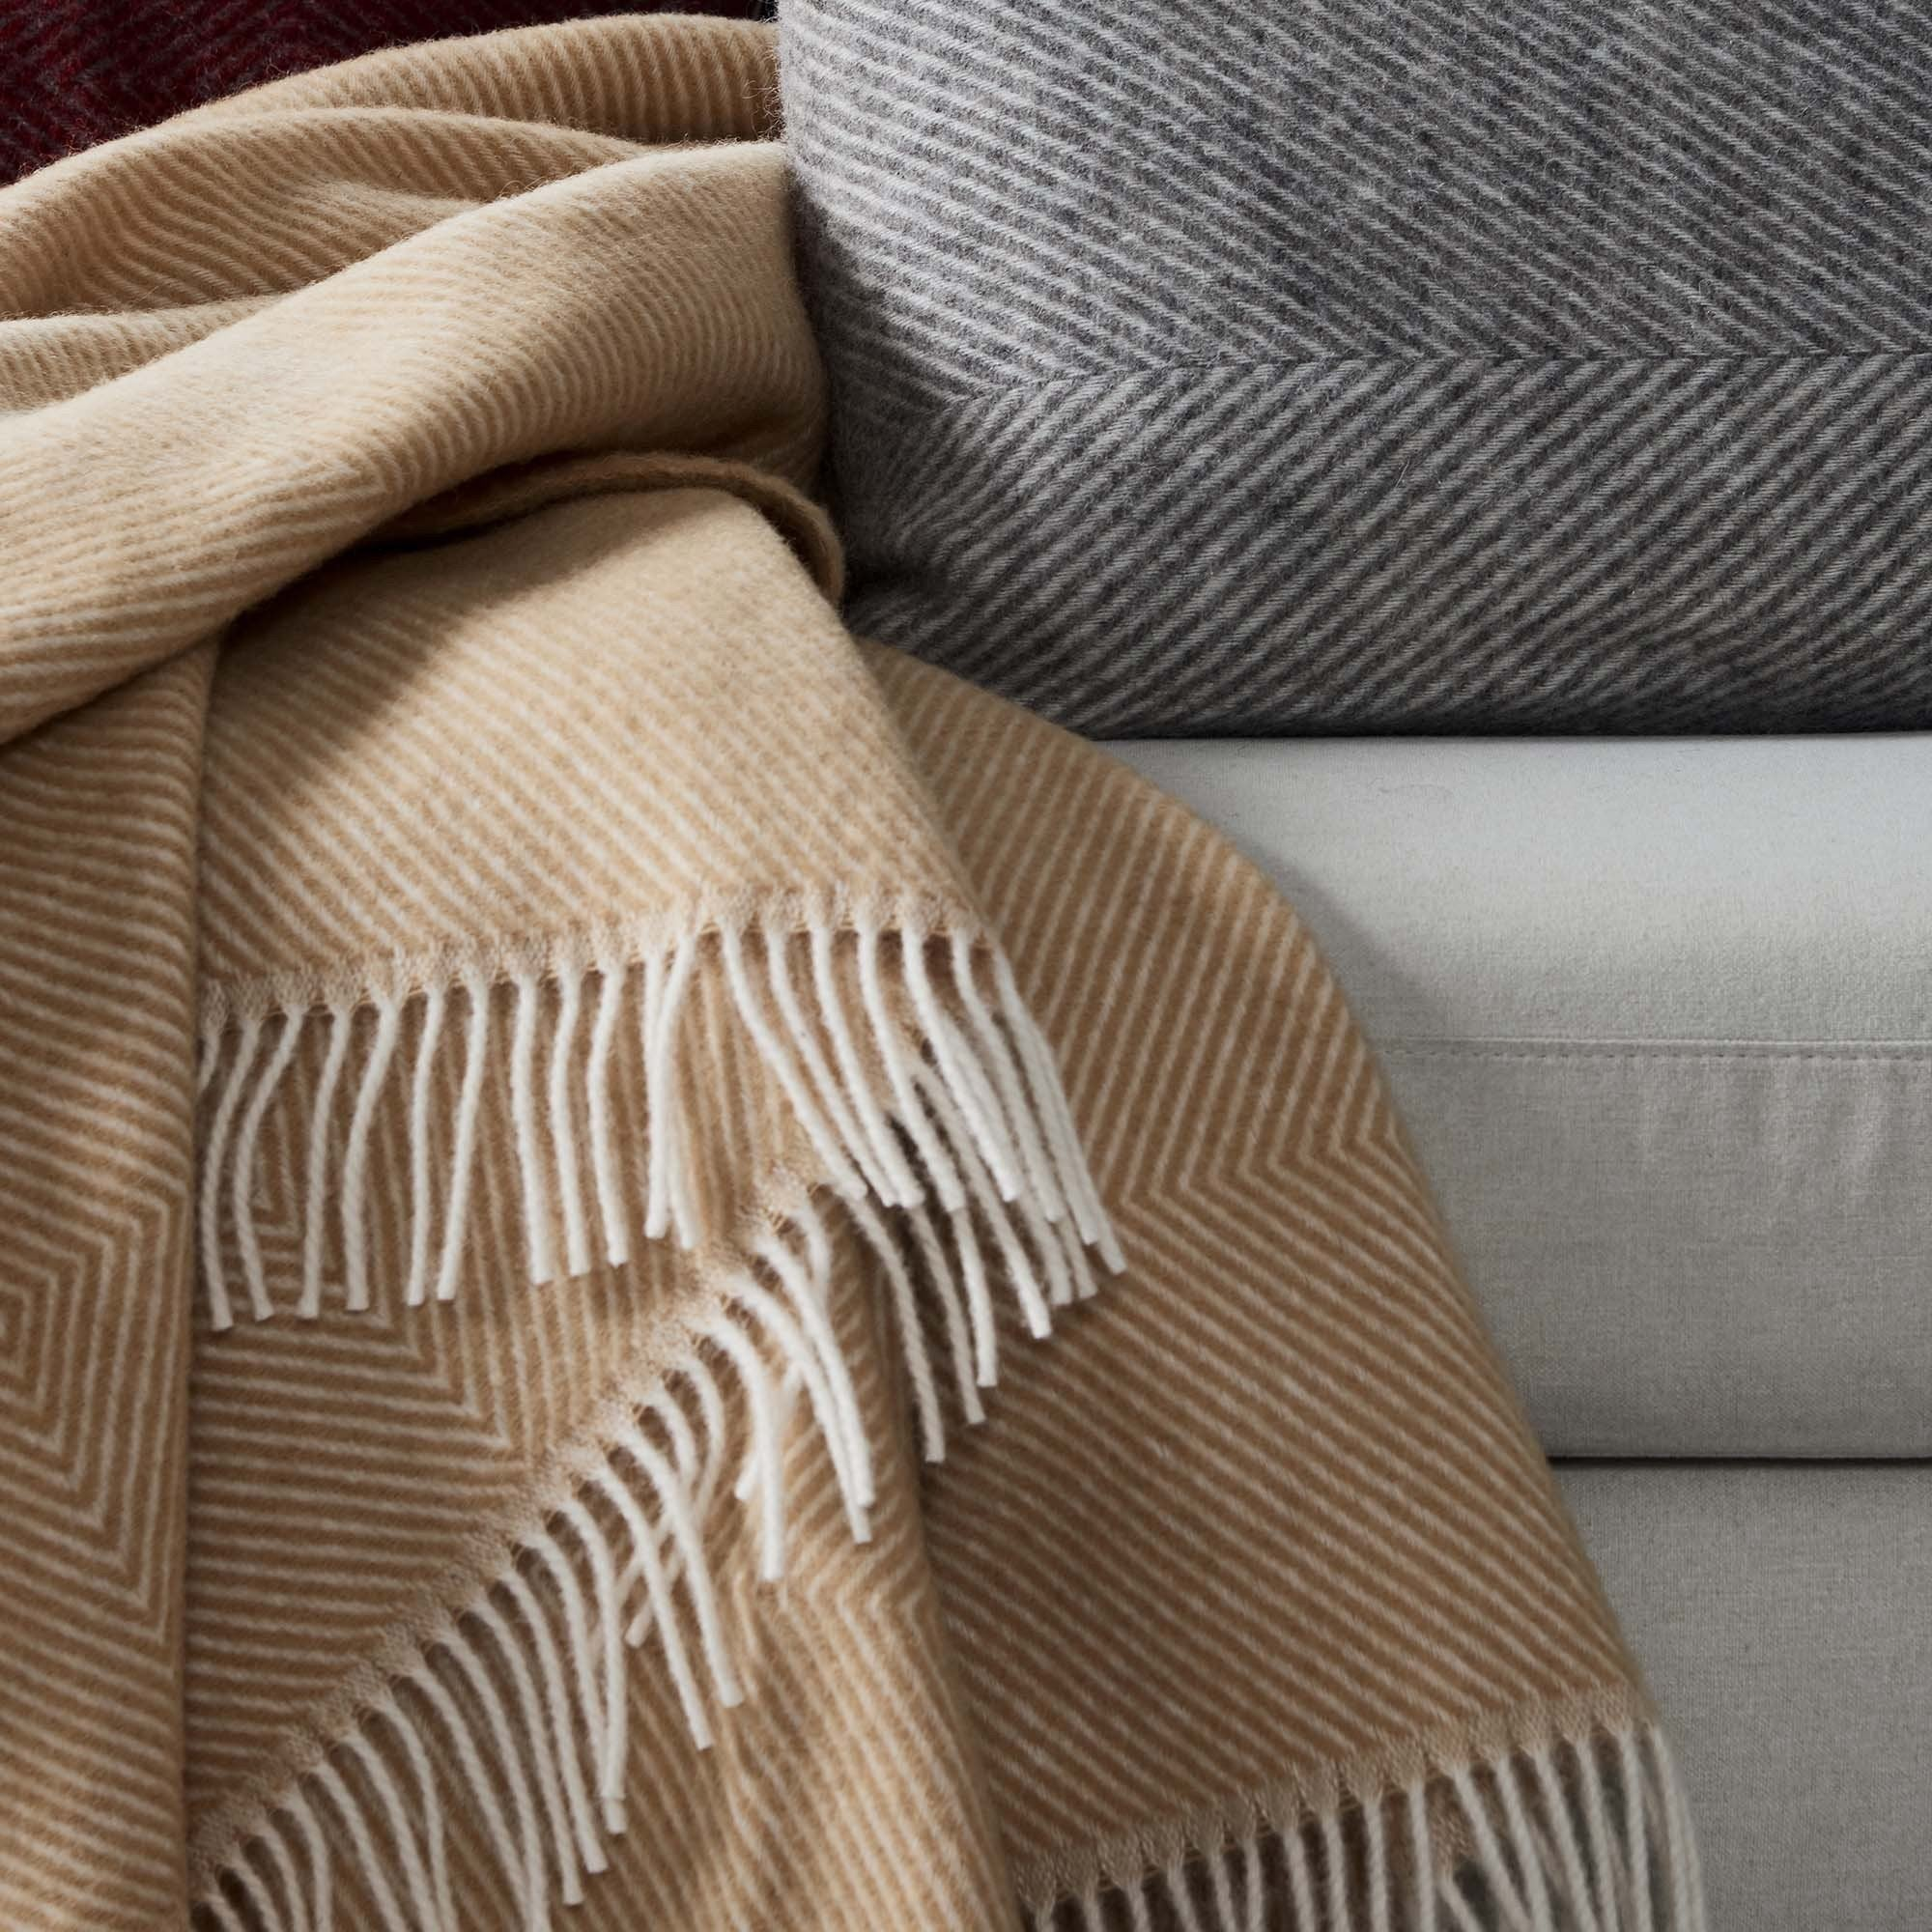 Gotland Wool Blanket in mustard & cream | Home & Living inspiration | URBANARA